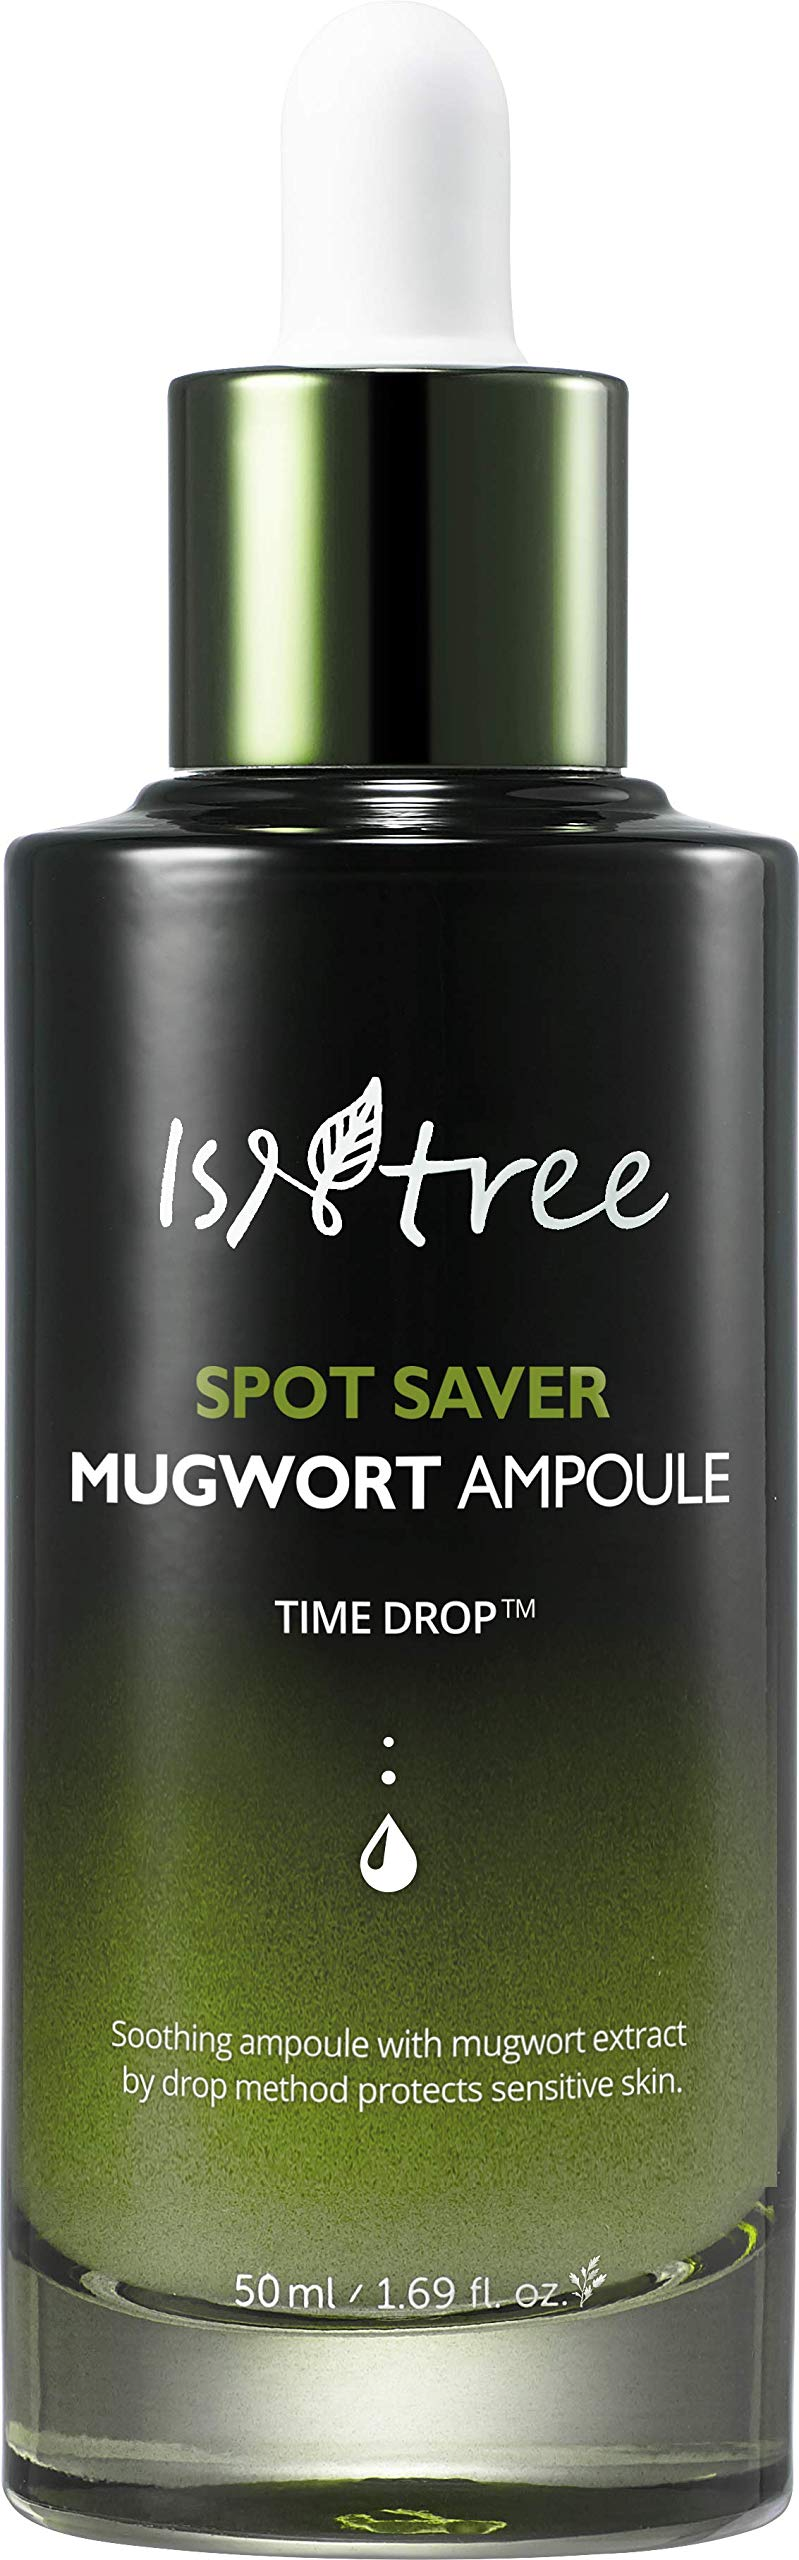 ISNTREE Spot Saver Mugwort Ampoule 1.69 fl.oz.   Skin Soothing, Moisturizing & Protecting with Mugwort Extracts   Korean Skin Care K-beauty   Serum Moisturizer Ample for Dry, Sensitive Acne Aging Skin